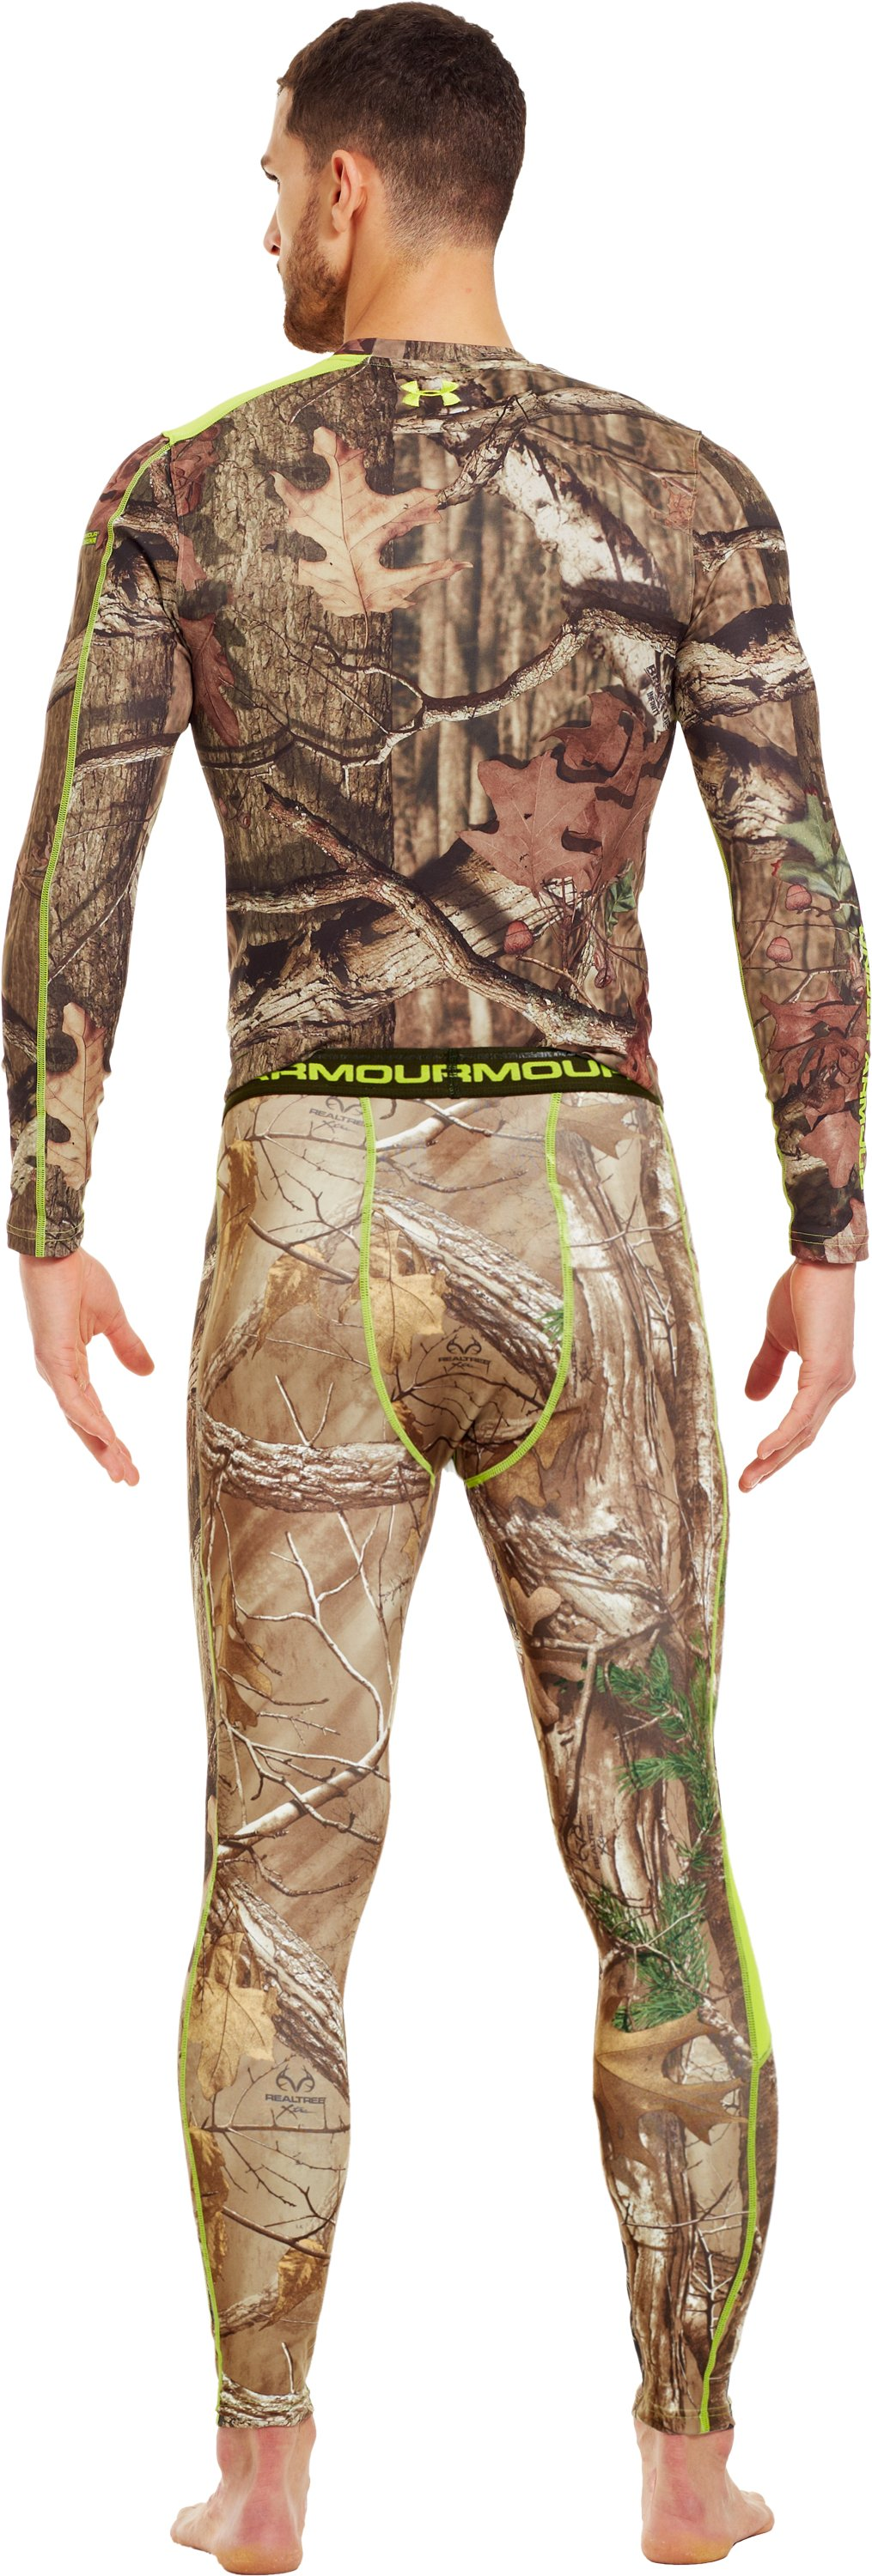 Men's ColdGear® Evo Scent Control Leggings, REALTREE AP-XTRA, Back